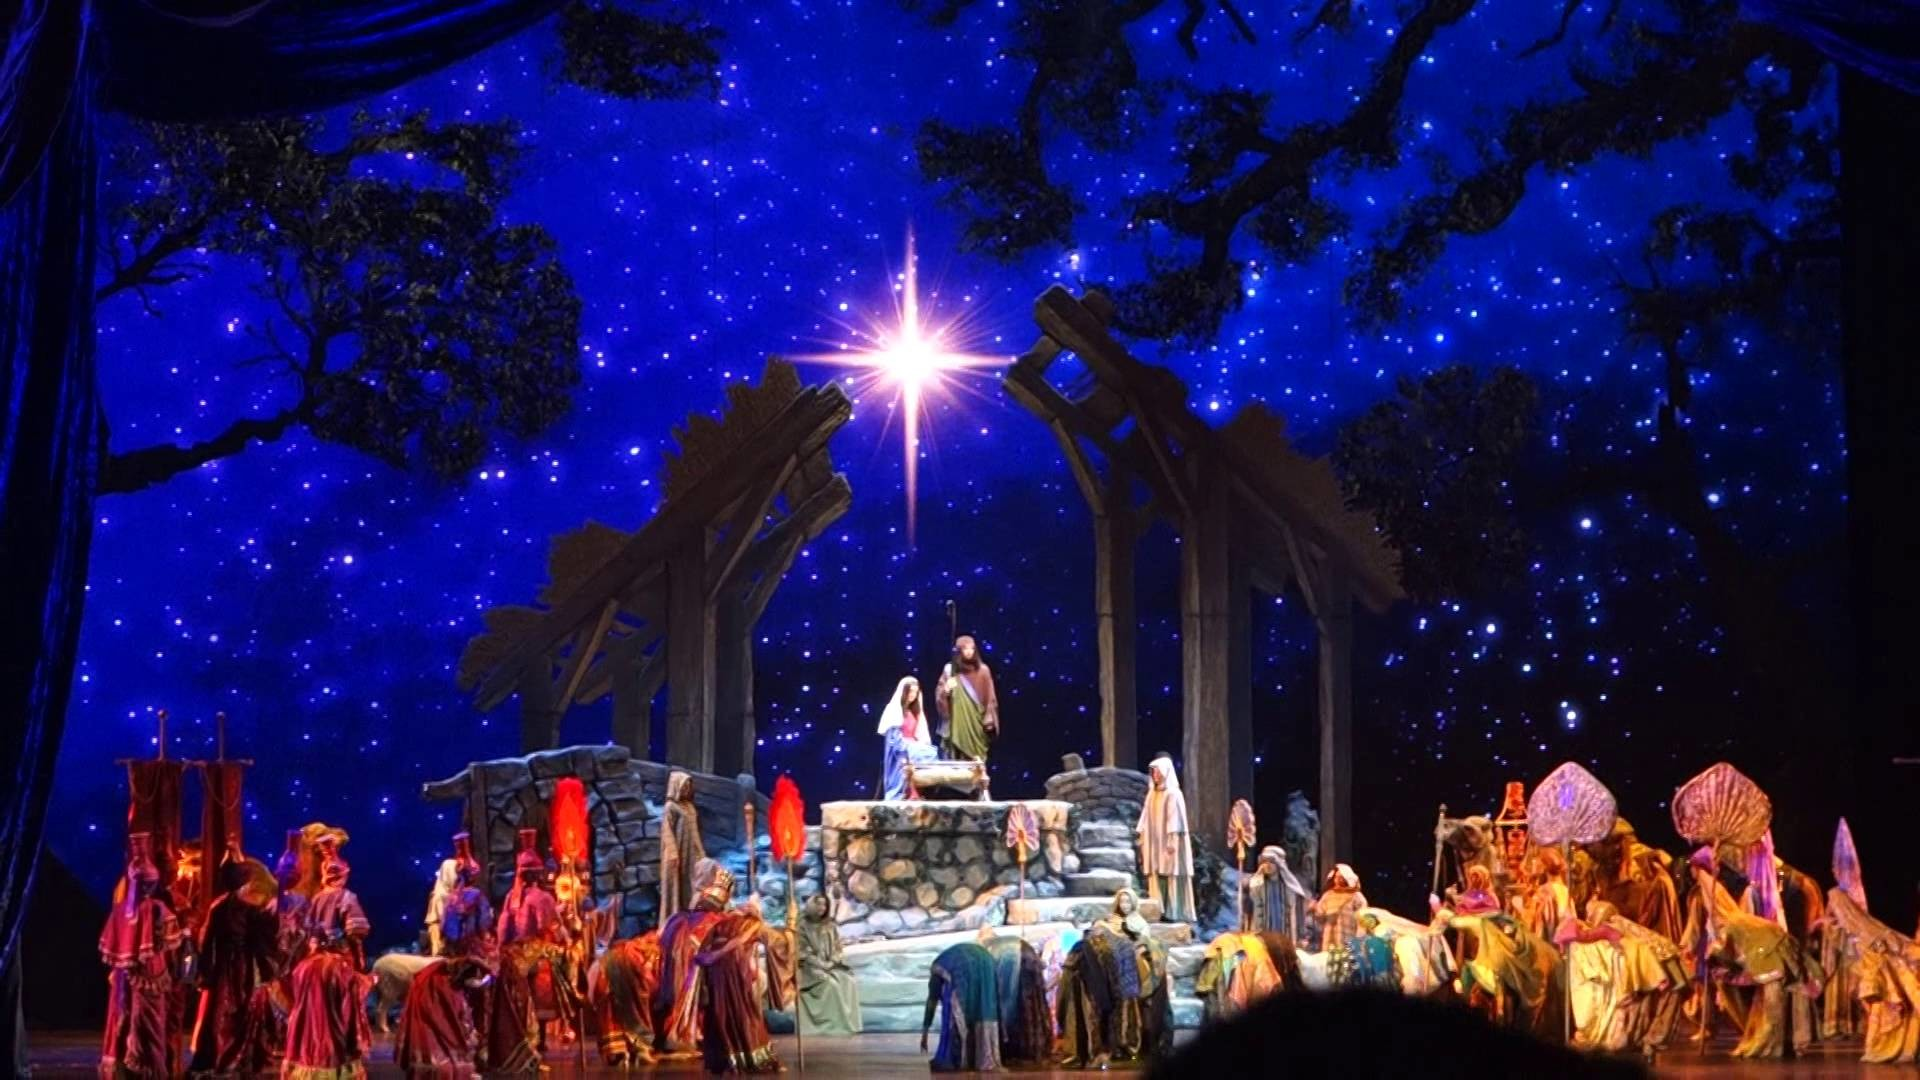 100 Holiday Scenes Wallpaper Hd Wallpapers: Nativity Scene Wallpapers (55+ Images